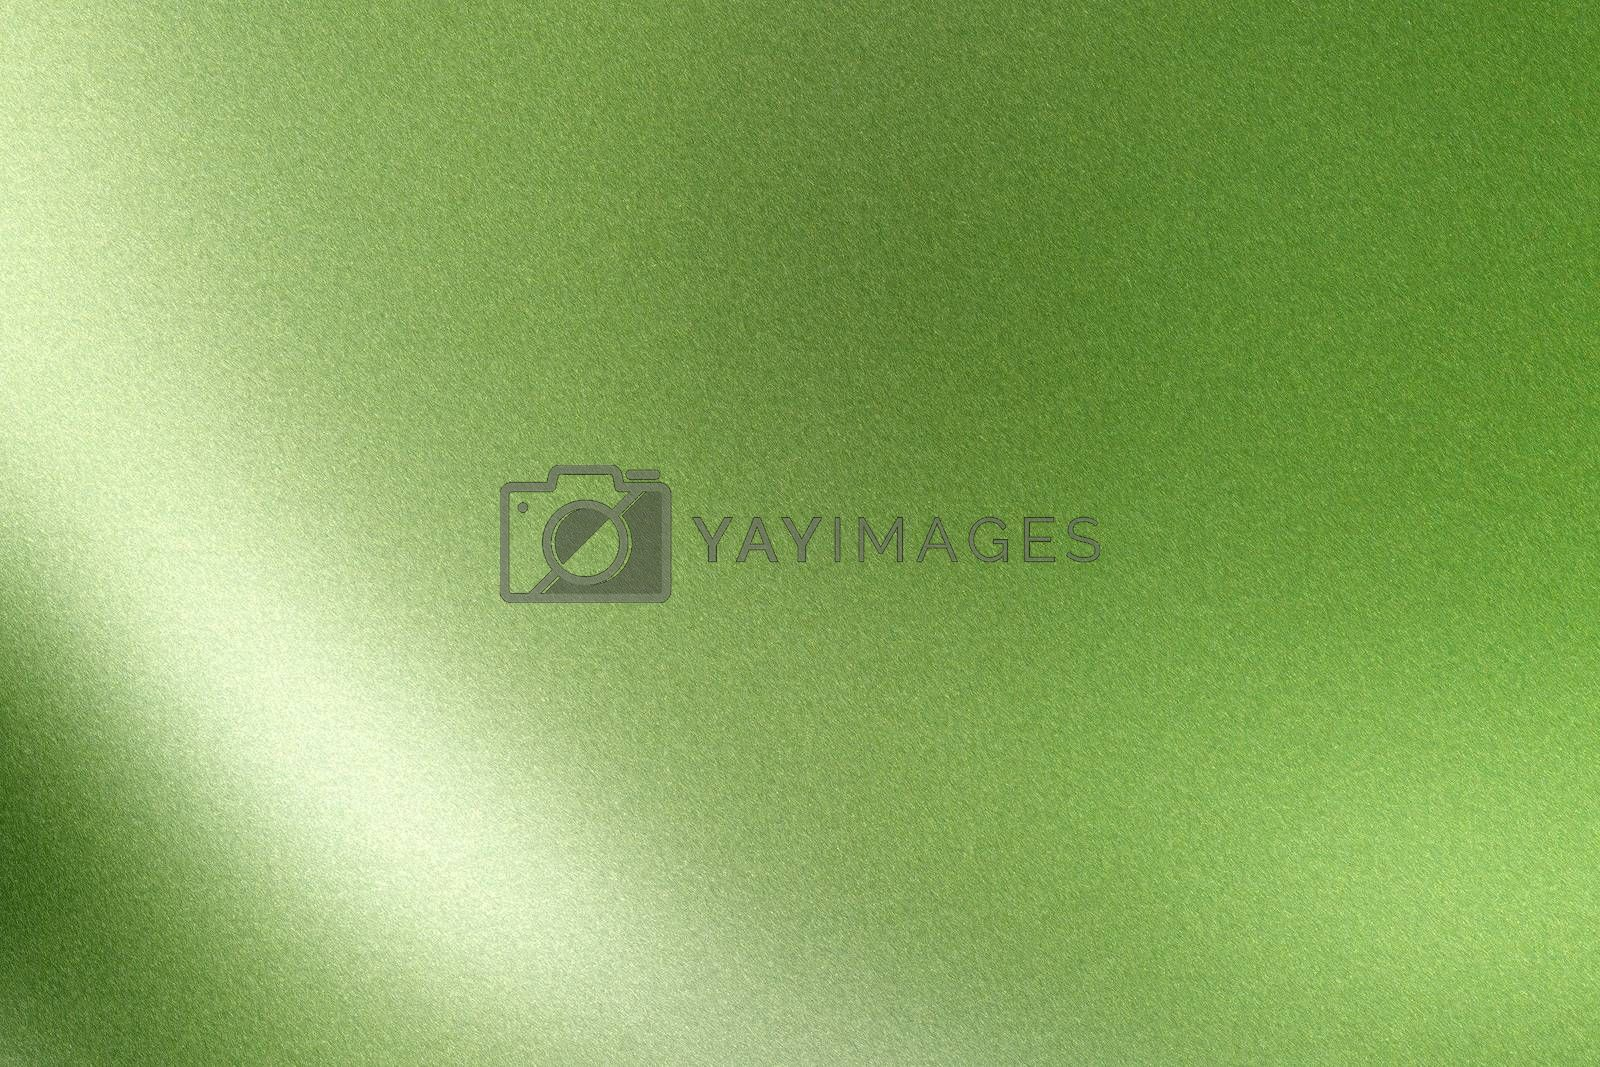 Royalty free image of Light shining on green wave metallic wall, abstract texture background by mouu007